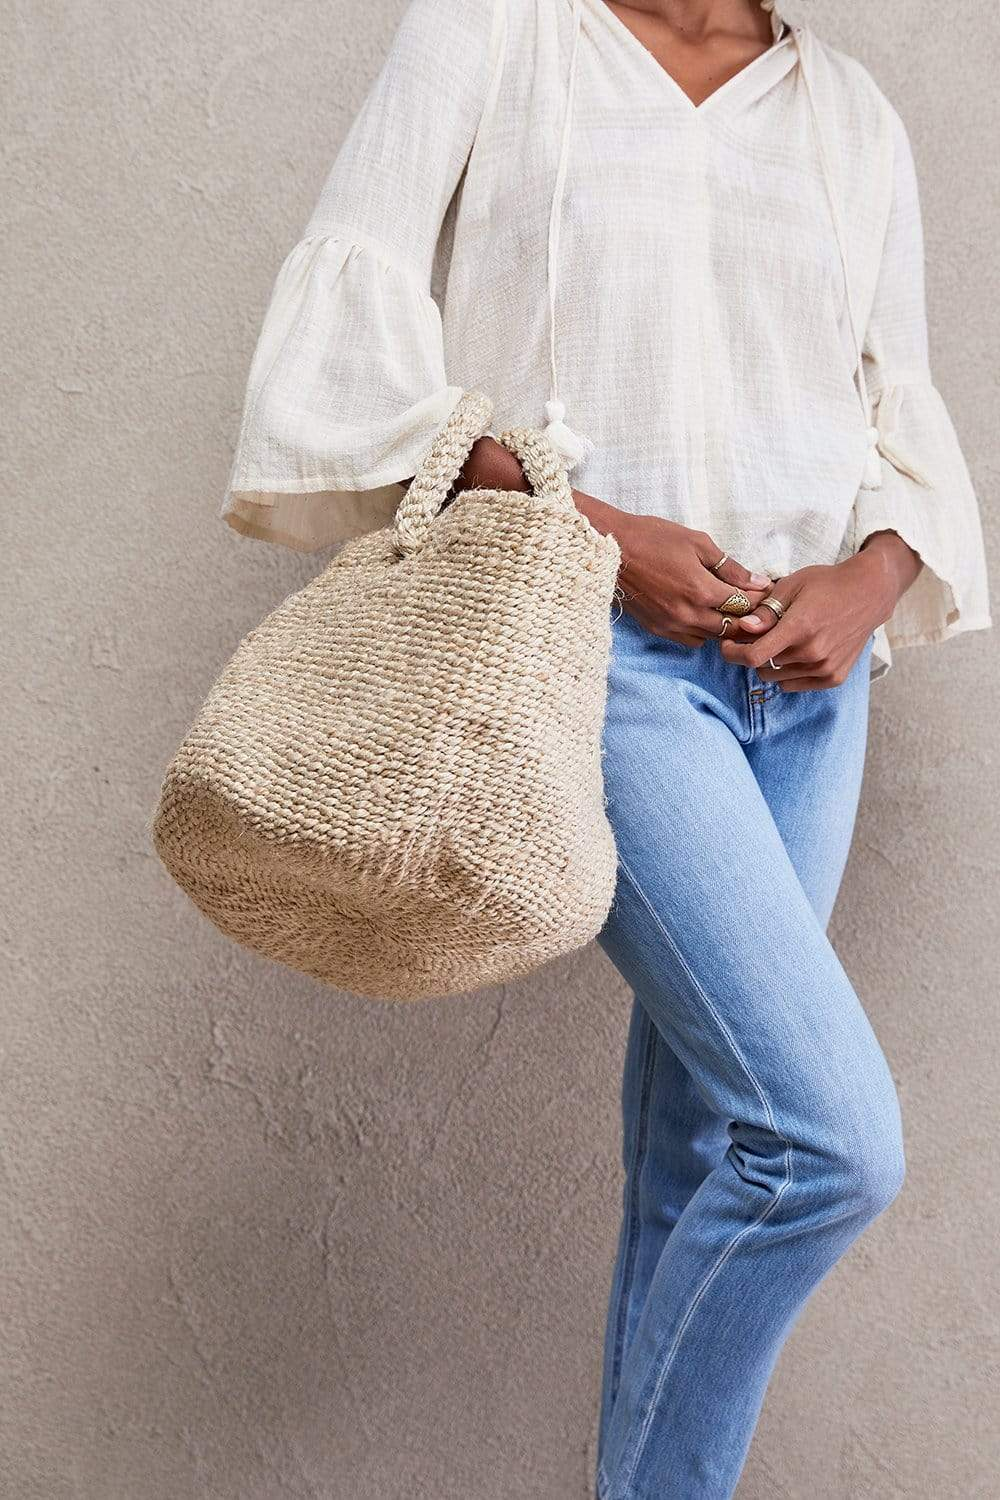 The Dharma Door Bags and Totes Seafarers Basket - Natural Seafarer Basket - Small